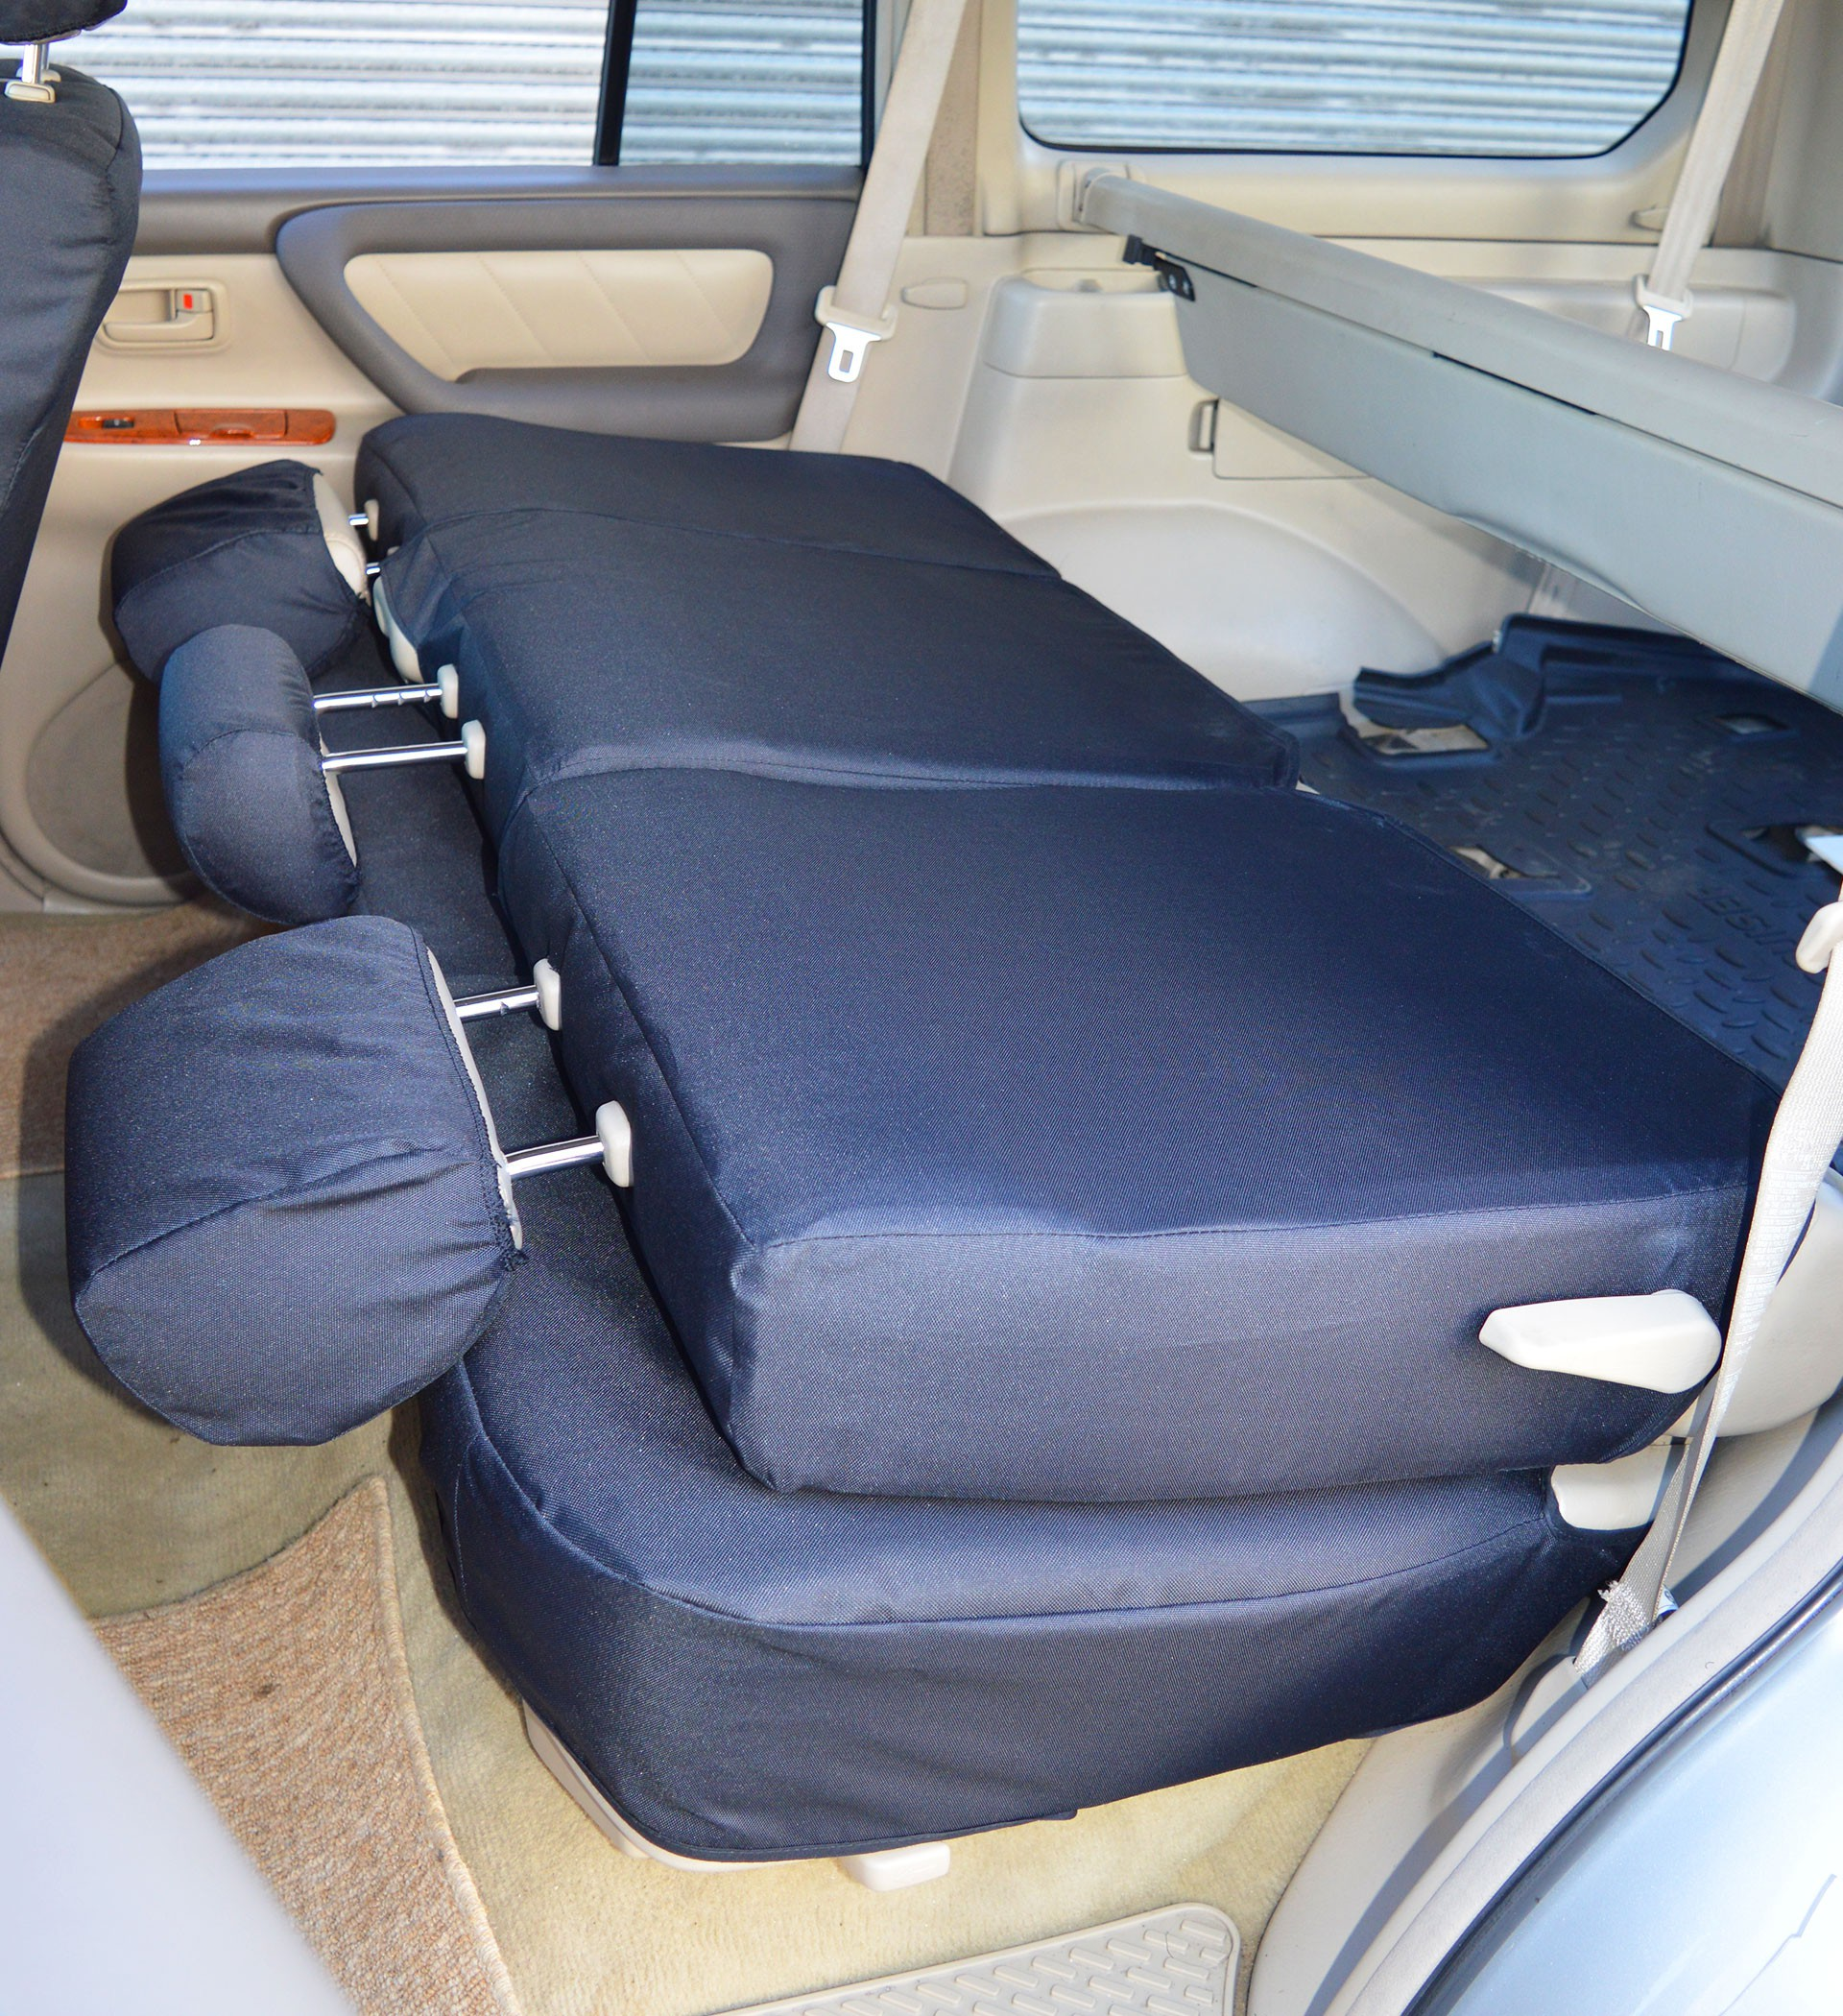 Incredible Toyota Land Cruiser Amazon J100 5 Seater Tailored Waterproof Heavy Duty Seat Covers 1998 2007 Machost Co Dining Chair Design Ideas Machostcouk